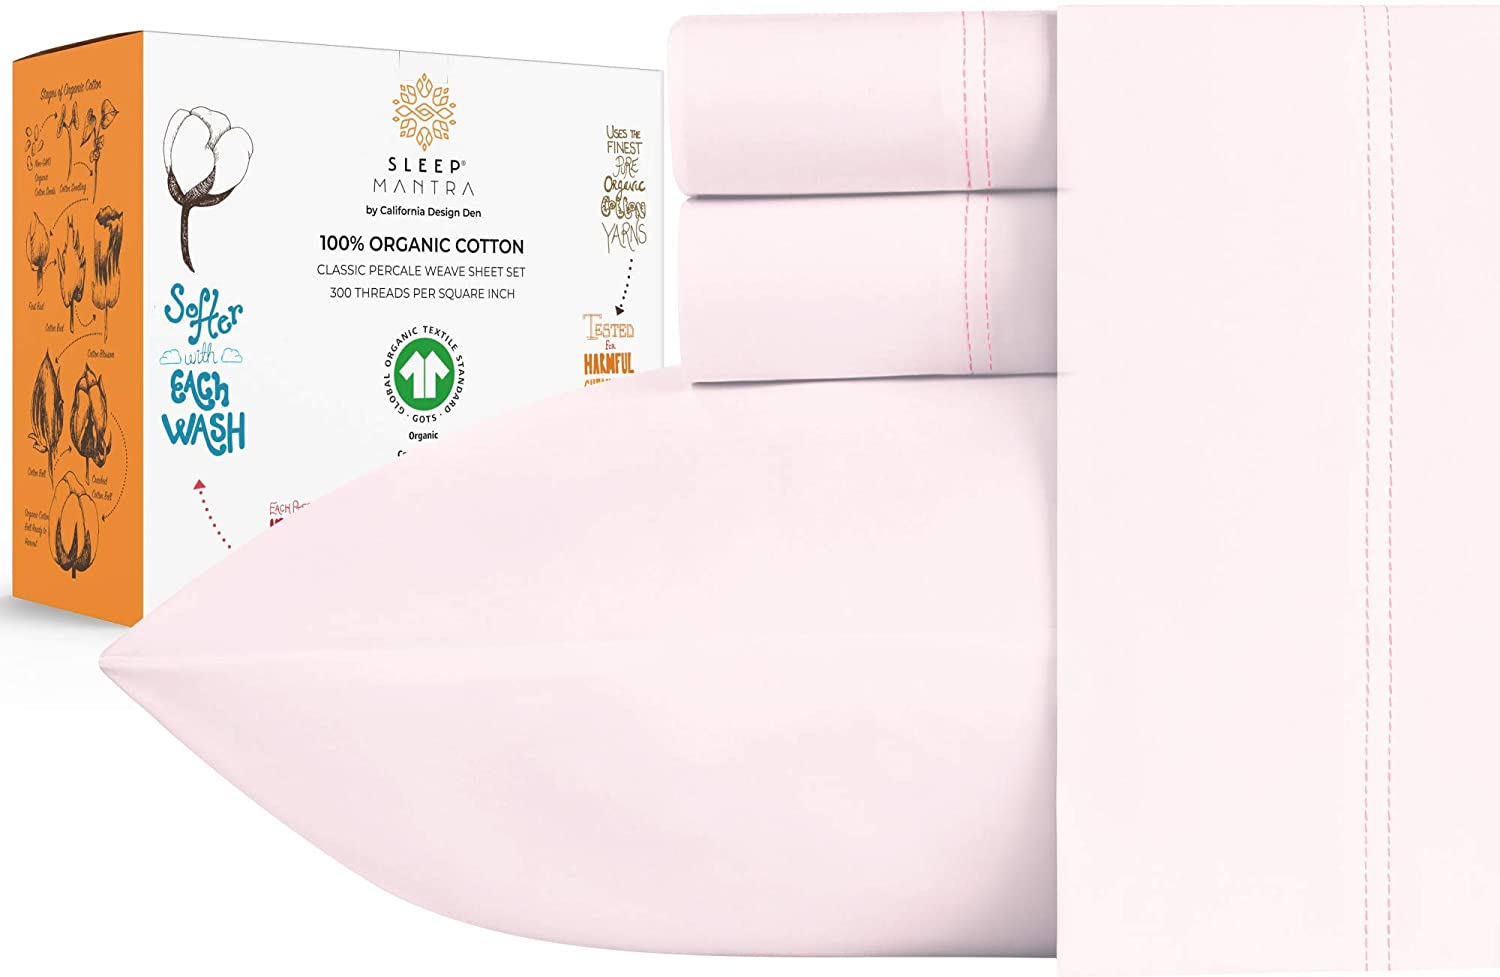 Details about  /Glorious Bedding Fitted Sheet Set Deep Pocket Organic Cotton Cal King All Color